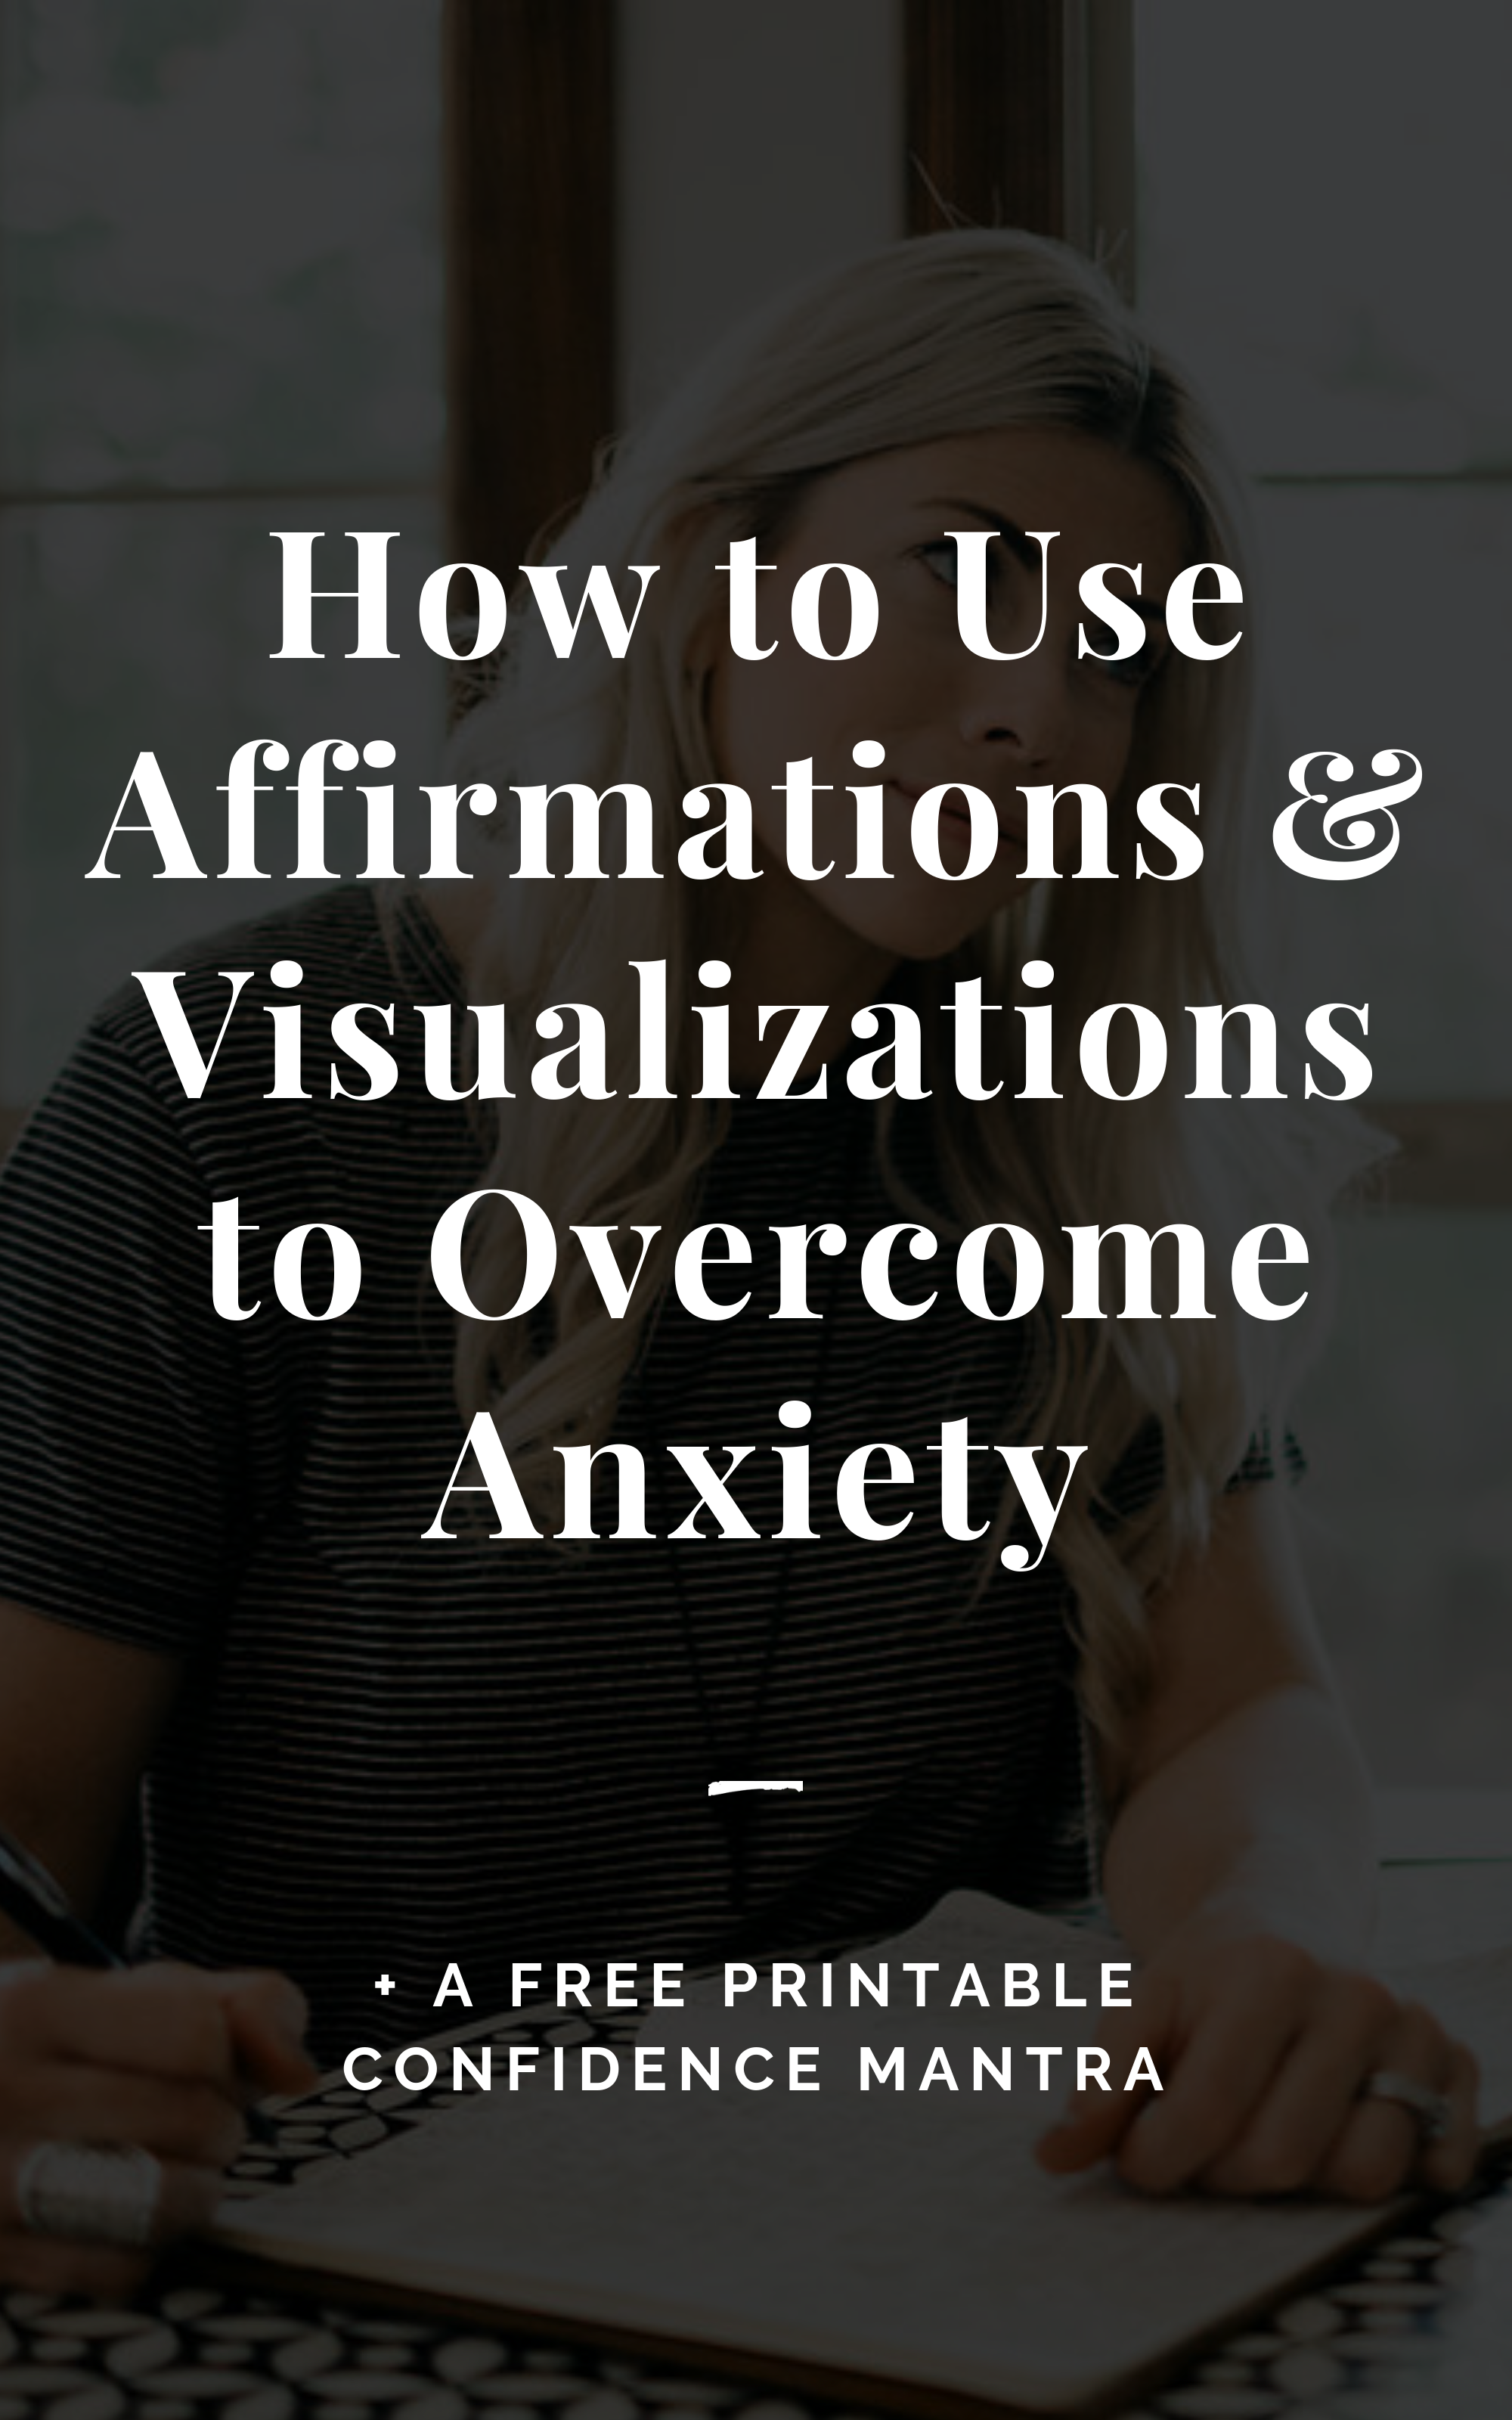 How to Use Affirmations & Visualizations to Overcome Anxiety